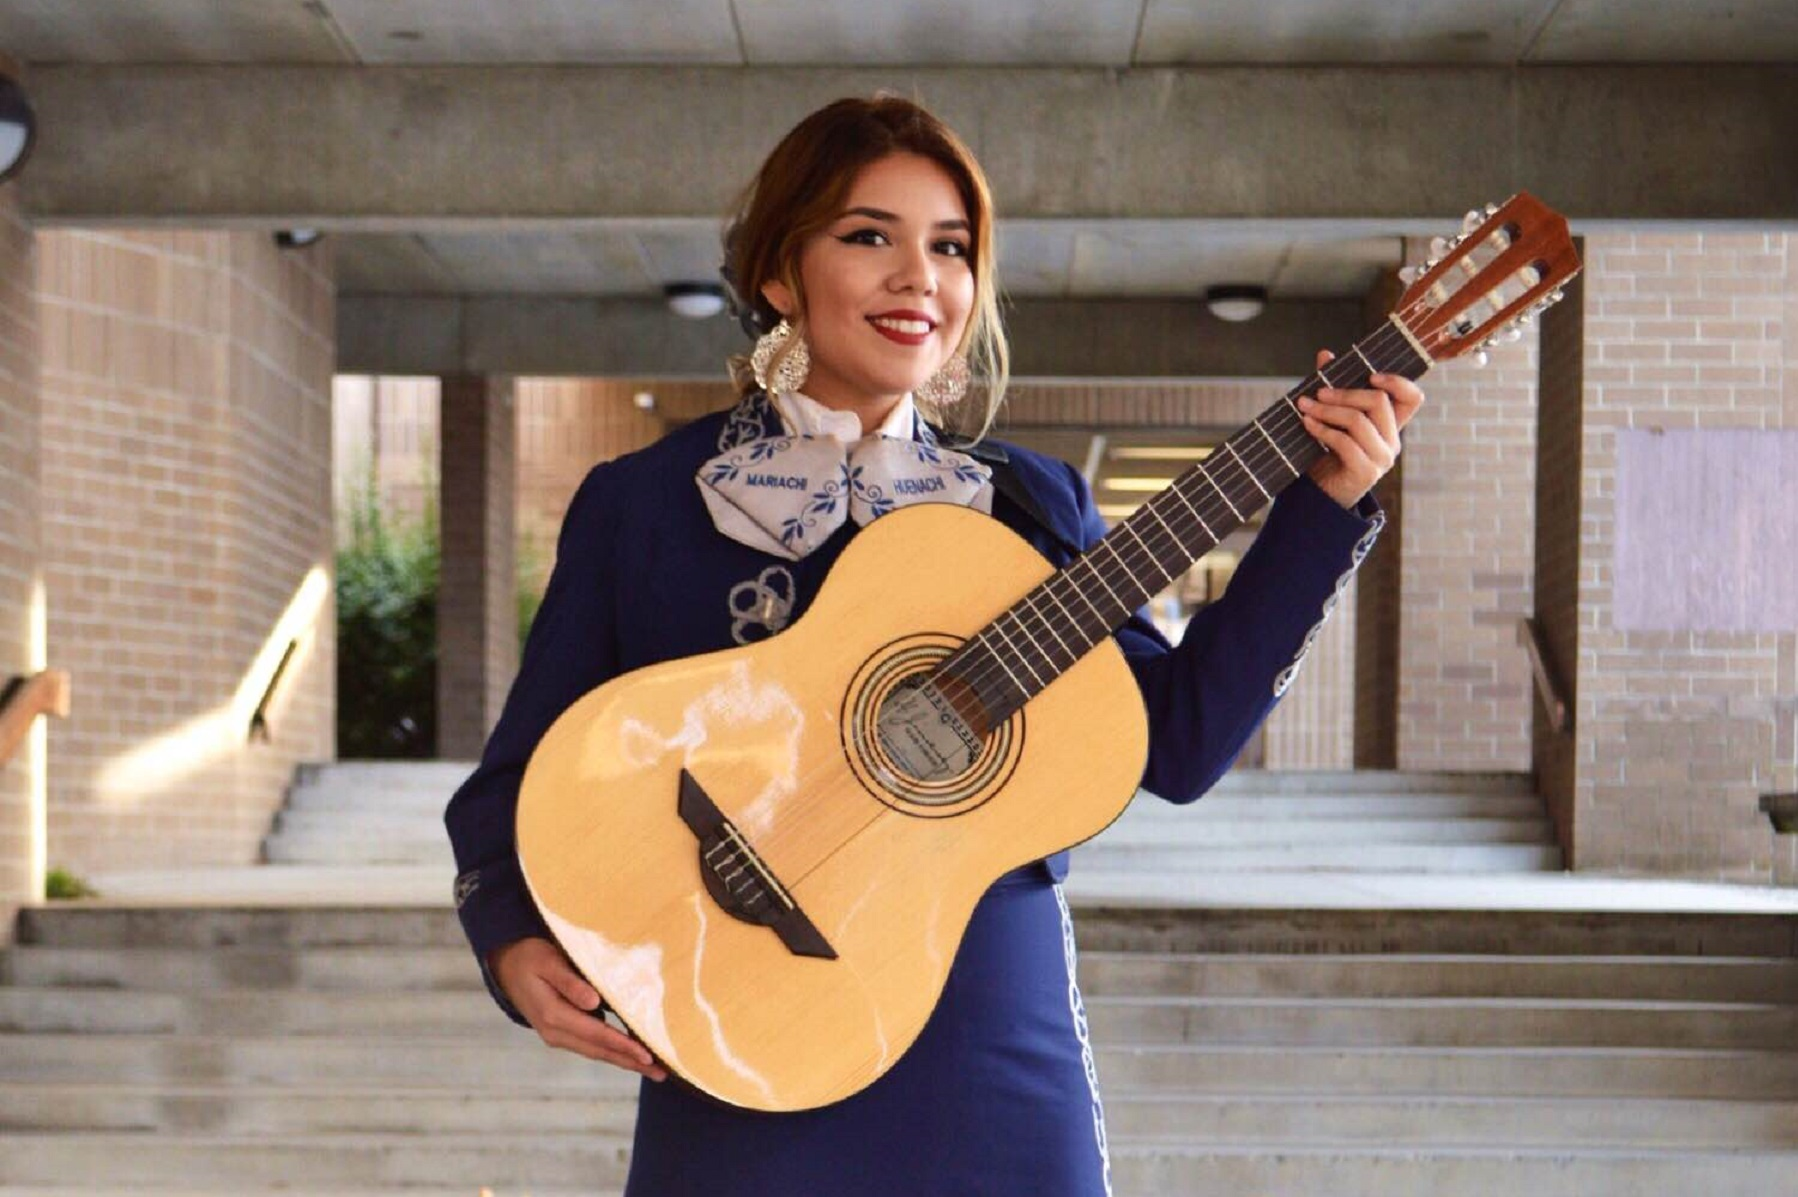 WHS Mariachi | Your Northwest choice for mariachi music!